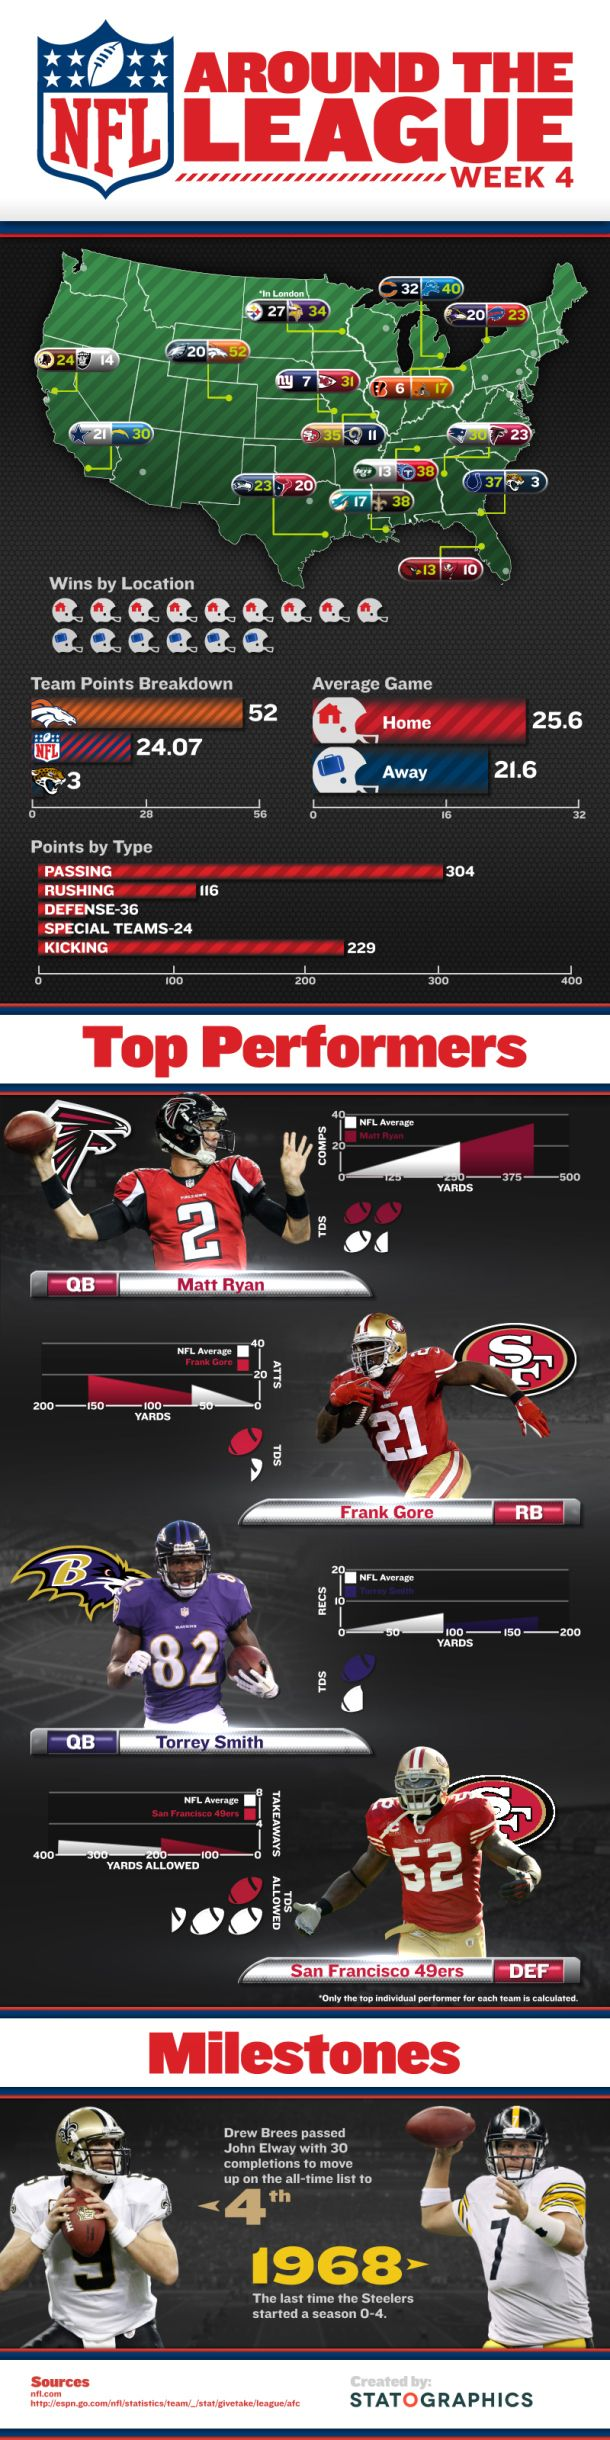 NFL Around The League [INFOGRAPHIC] #NFL#league